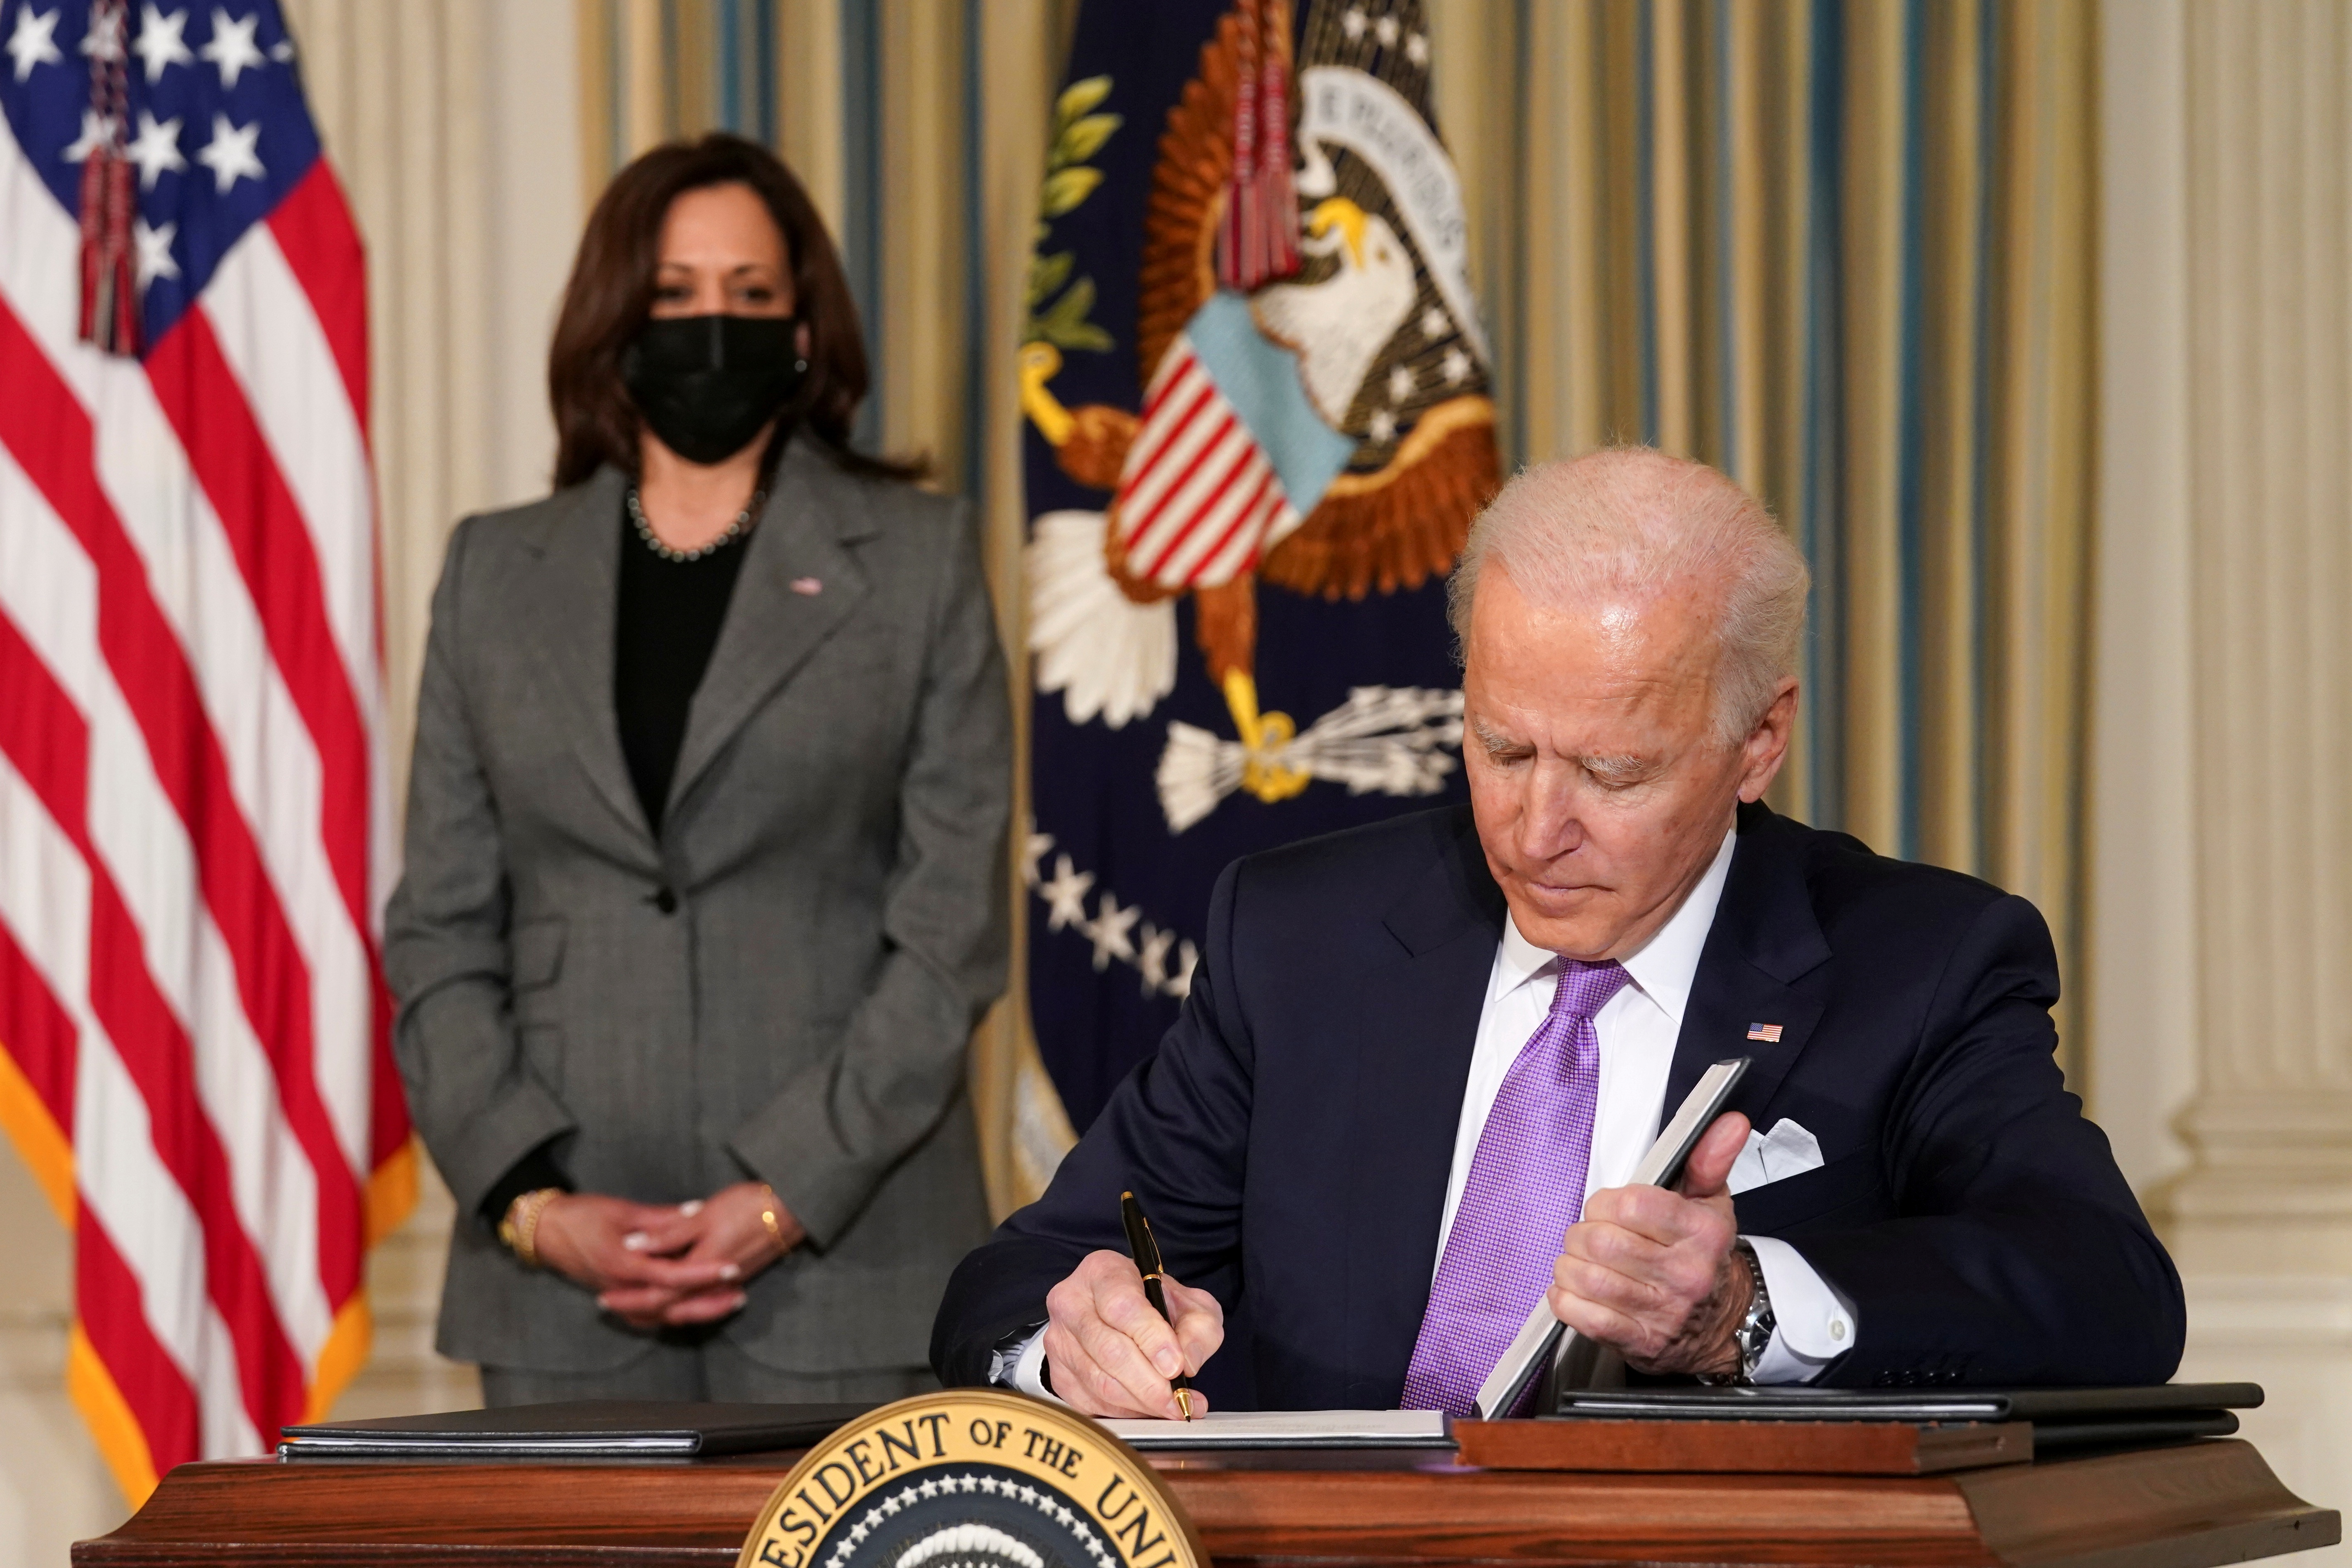 U.S. Vice President Kamala Harris watches as President Joe Biden signs executive orders on his racial equity agenda at the White House in Washington, DC on January 26, 2021.